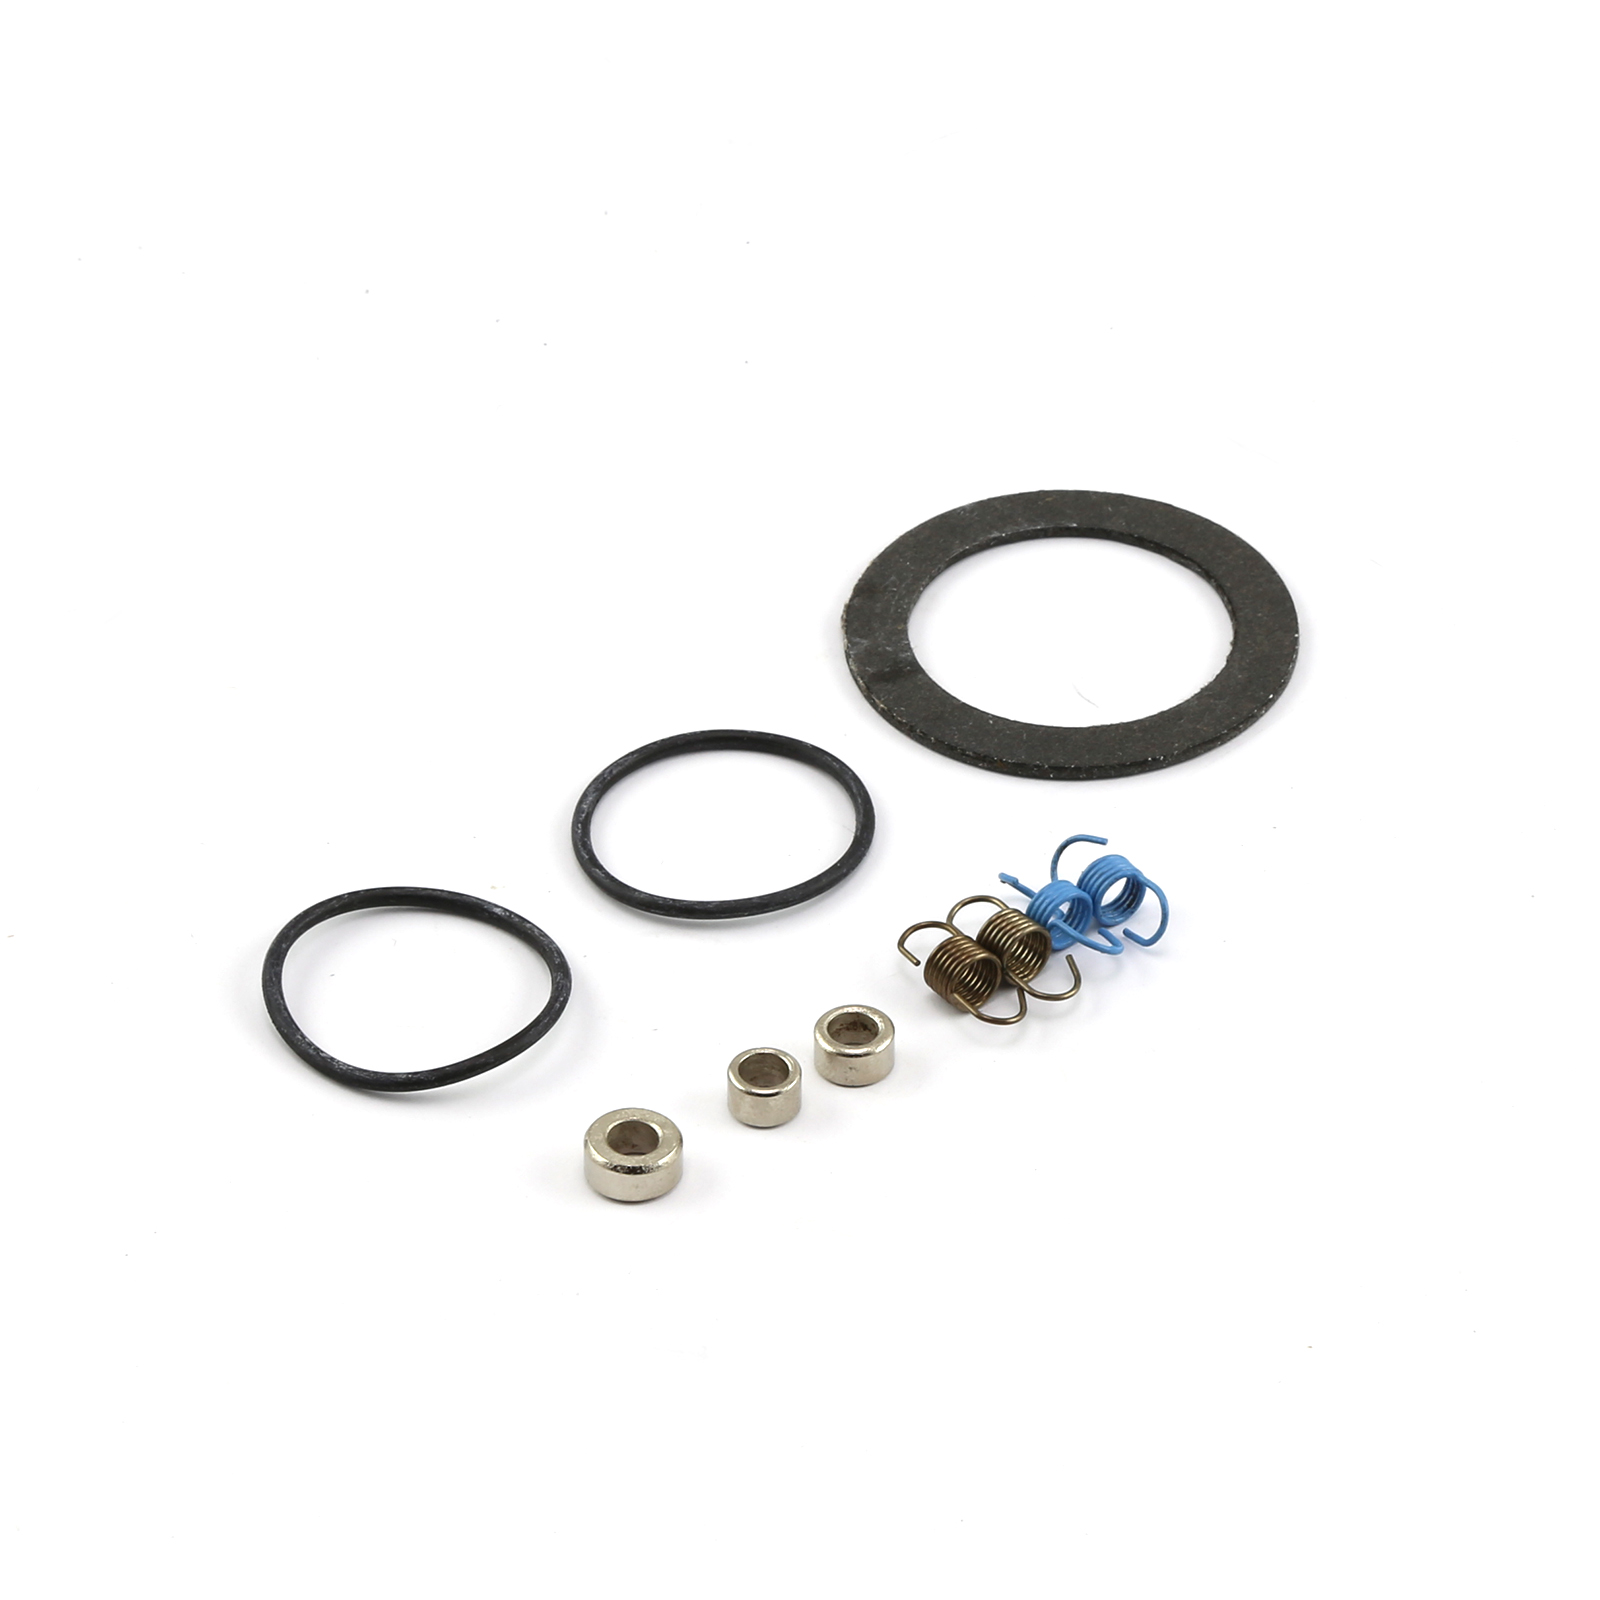 HEI Distributor Advance Curve Kit (Suits: all GM and aftermarket HEI)